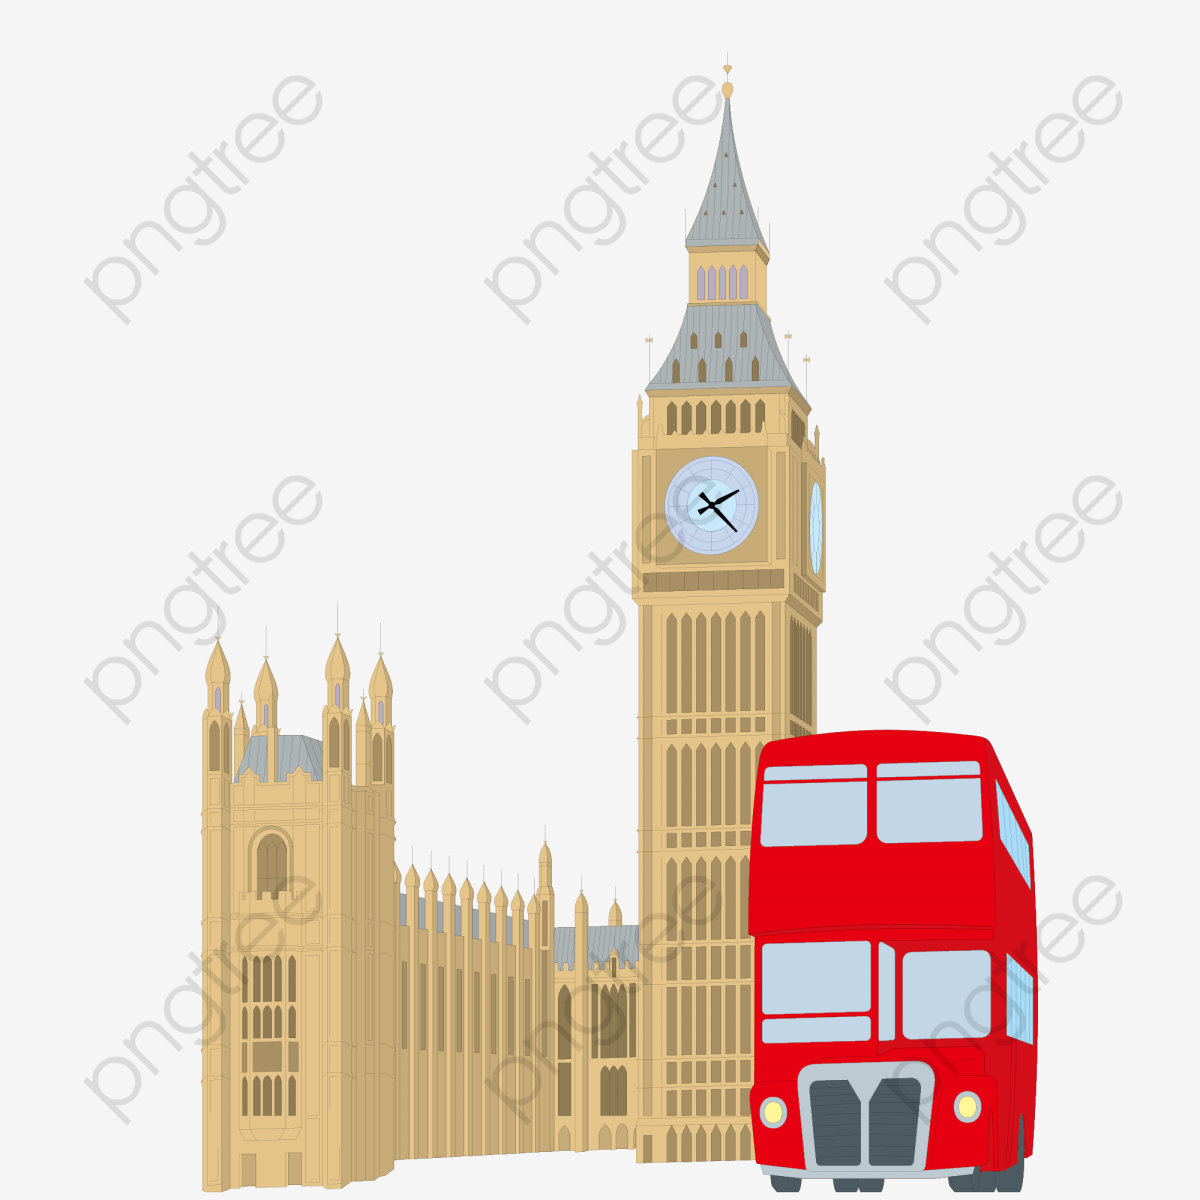 Big Ben London Bus Creatives, Big Ben, London Buses, Vector.